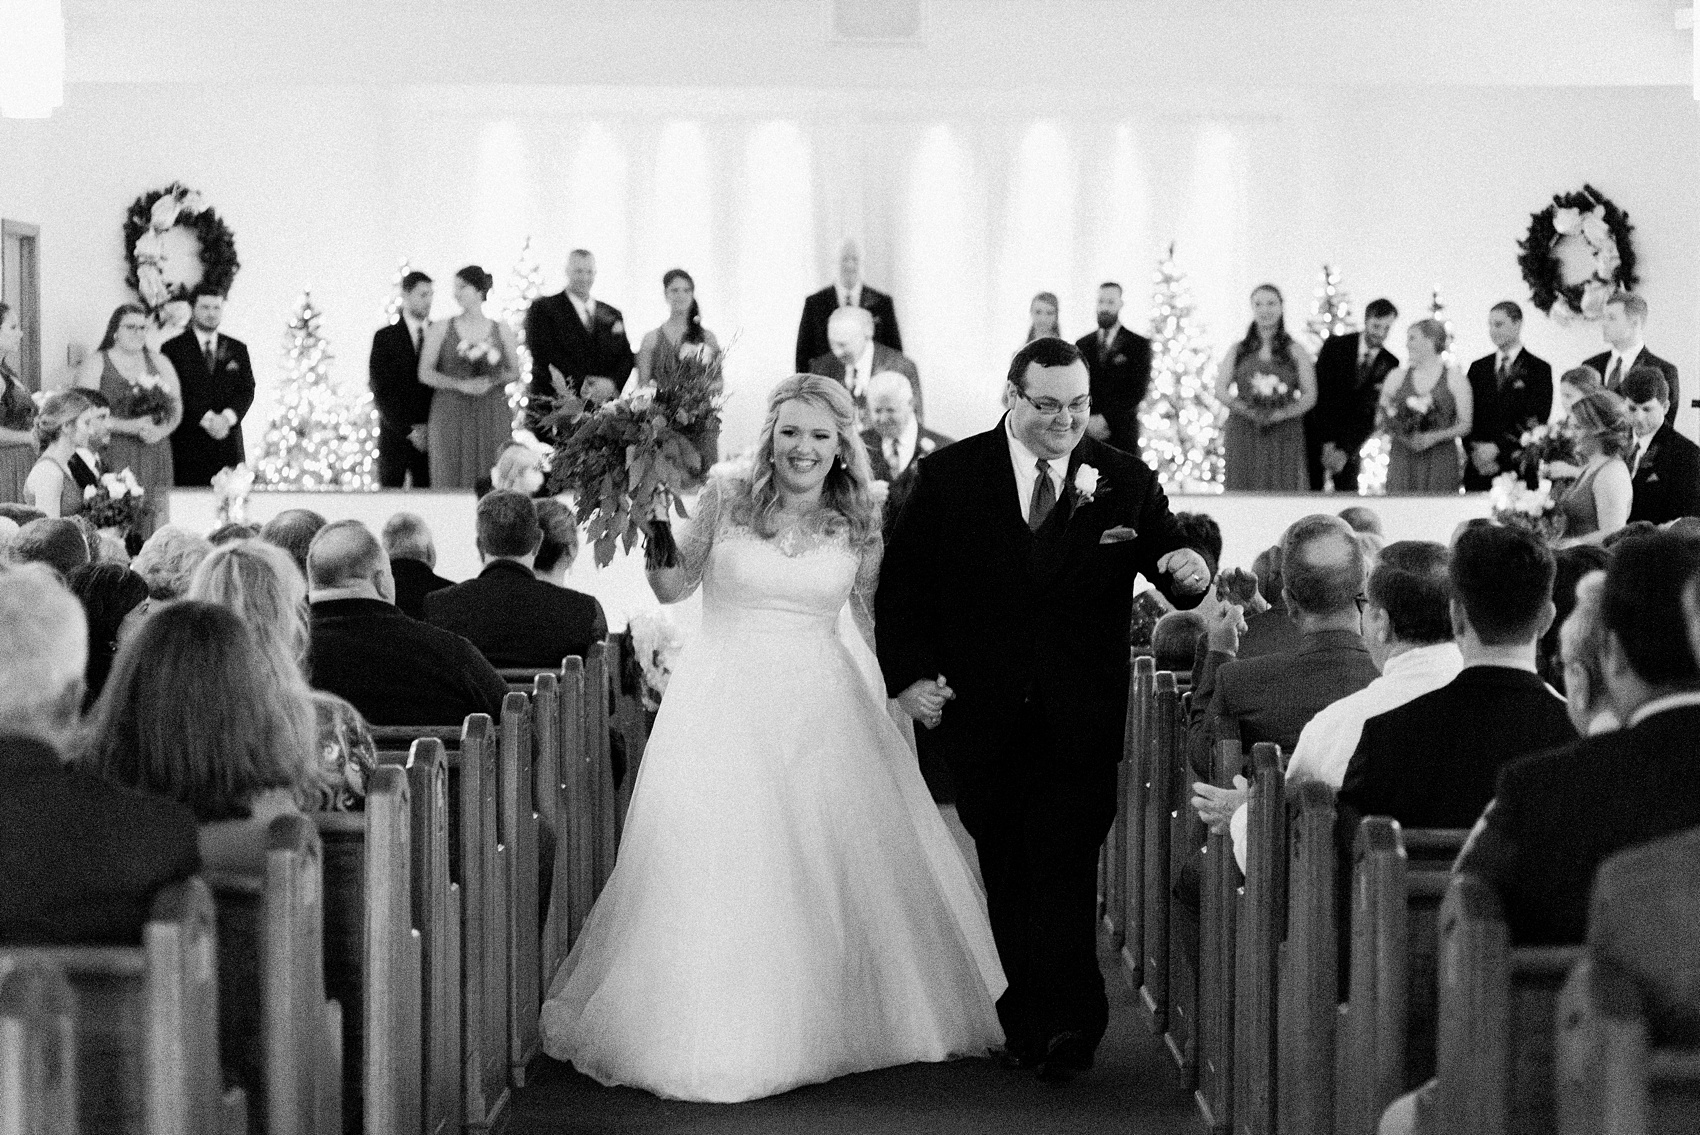 aiken_wedding_photographer_5072.jpg